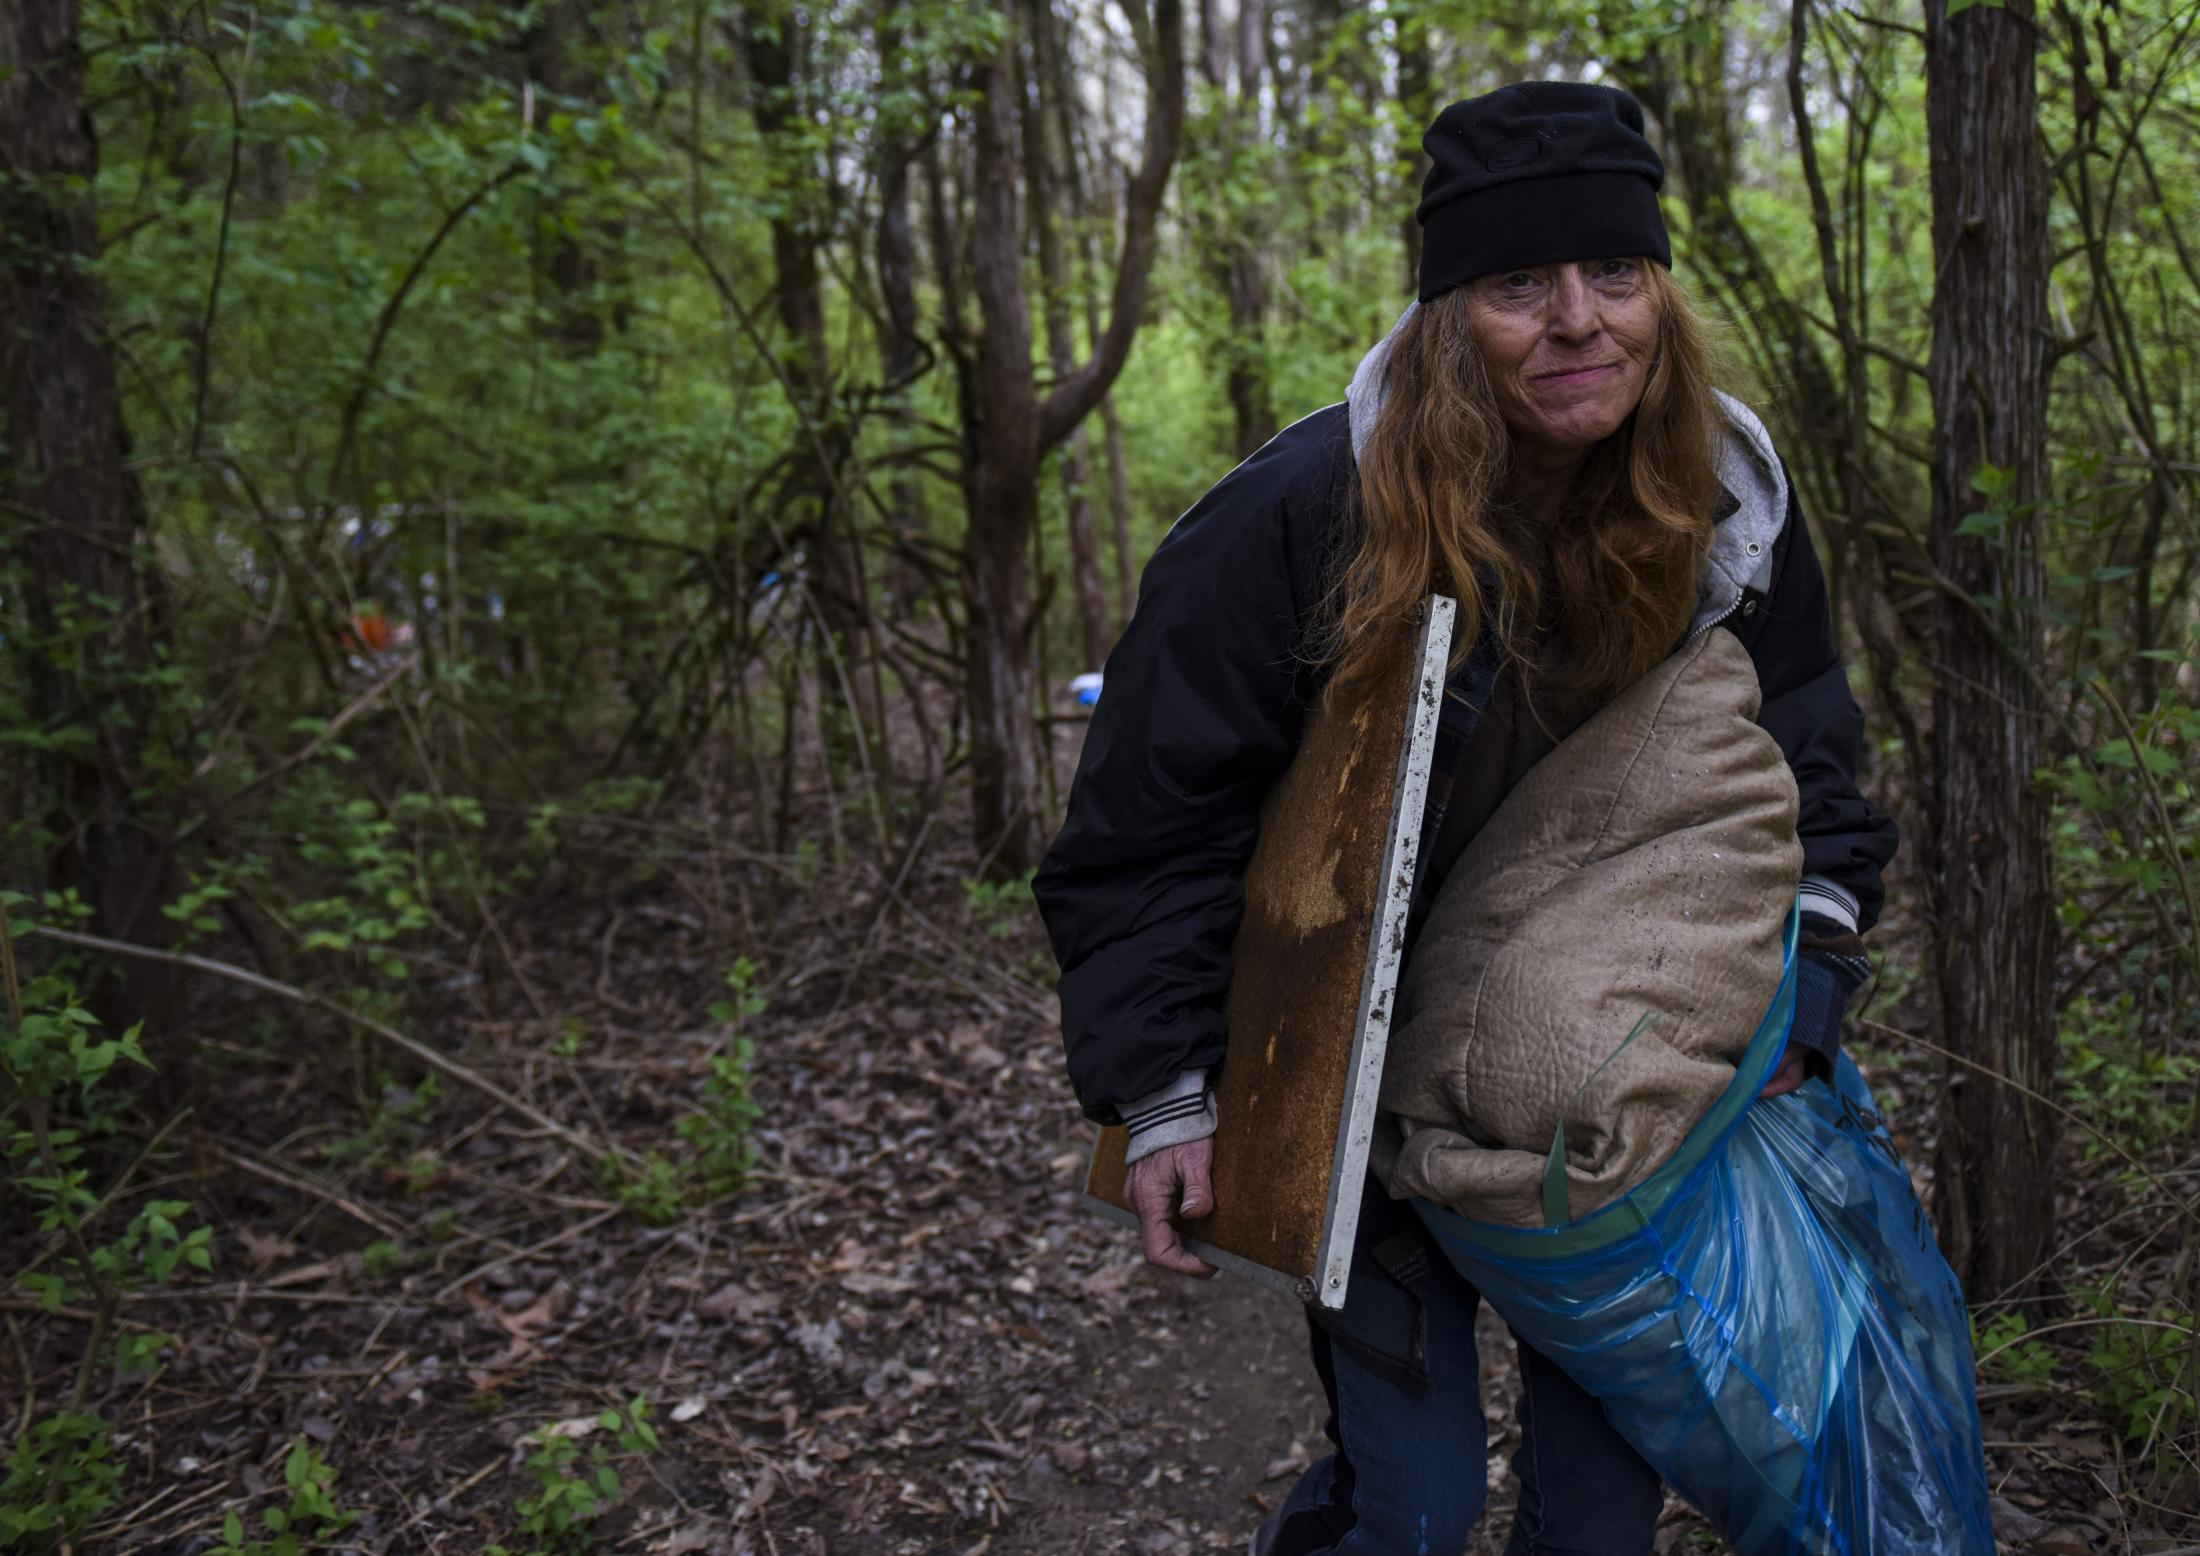 """Volunteer Diana Welch(CQ) carries some items out of the abandoned campsite on Saturday, April 11, 2020, in Columbia. Welch said the homeless have to struggle with everything from finding a place to lay their head at night to getting proper medical care. Welch broke her arm in an accident. """"Yeah, I don't have insurance so it is still broken,"""" Welch said. """"I can't imagine they'd be much help if I got sick from the coronavirus either."""" Samantha Waigand/Missourian"""